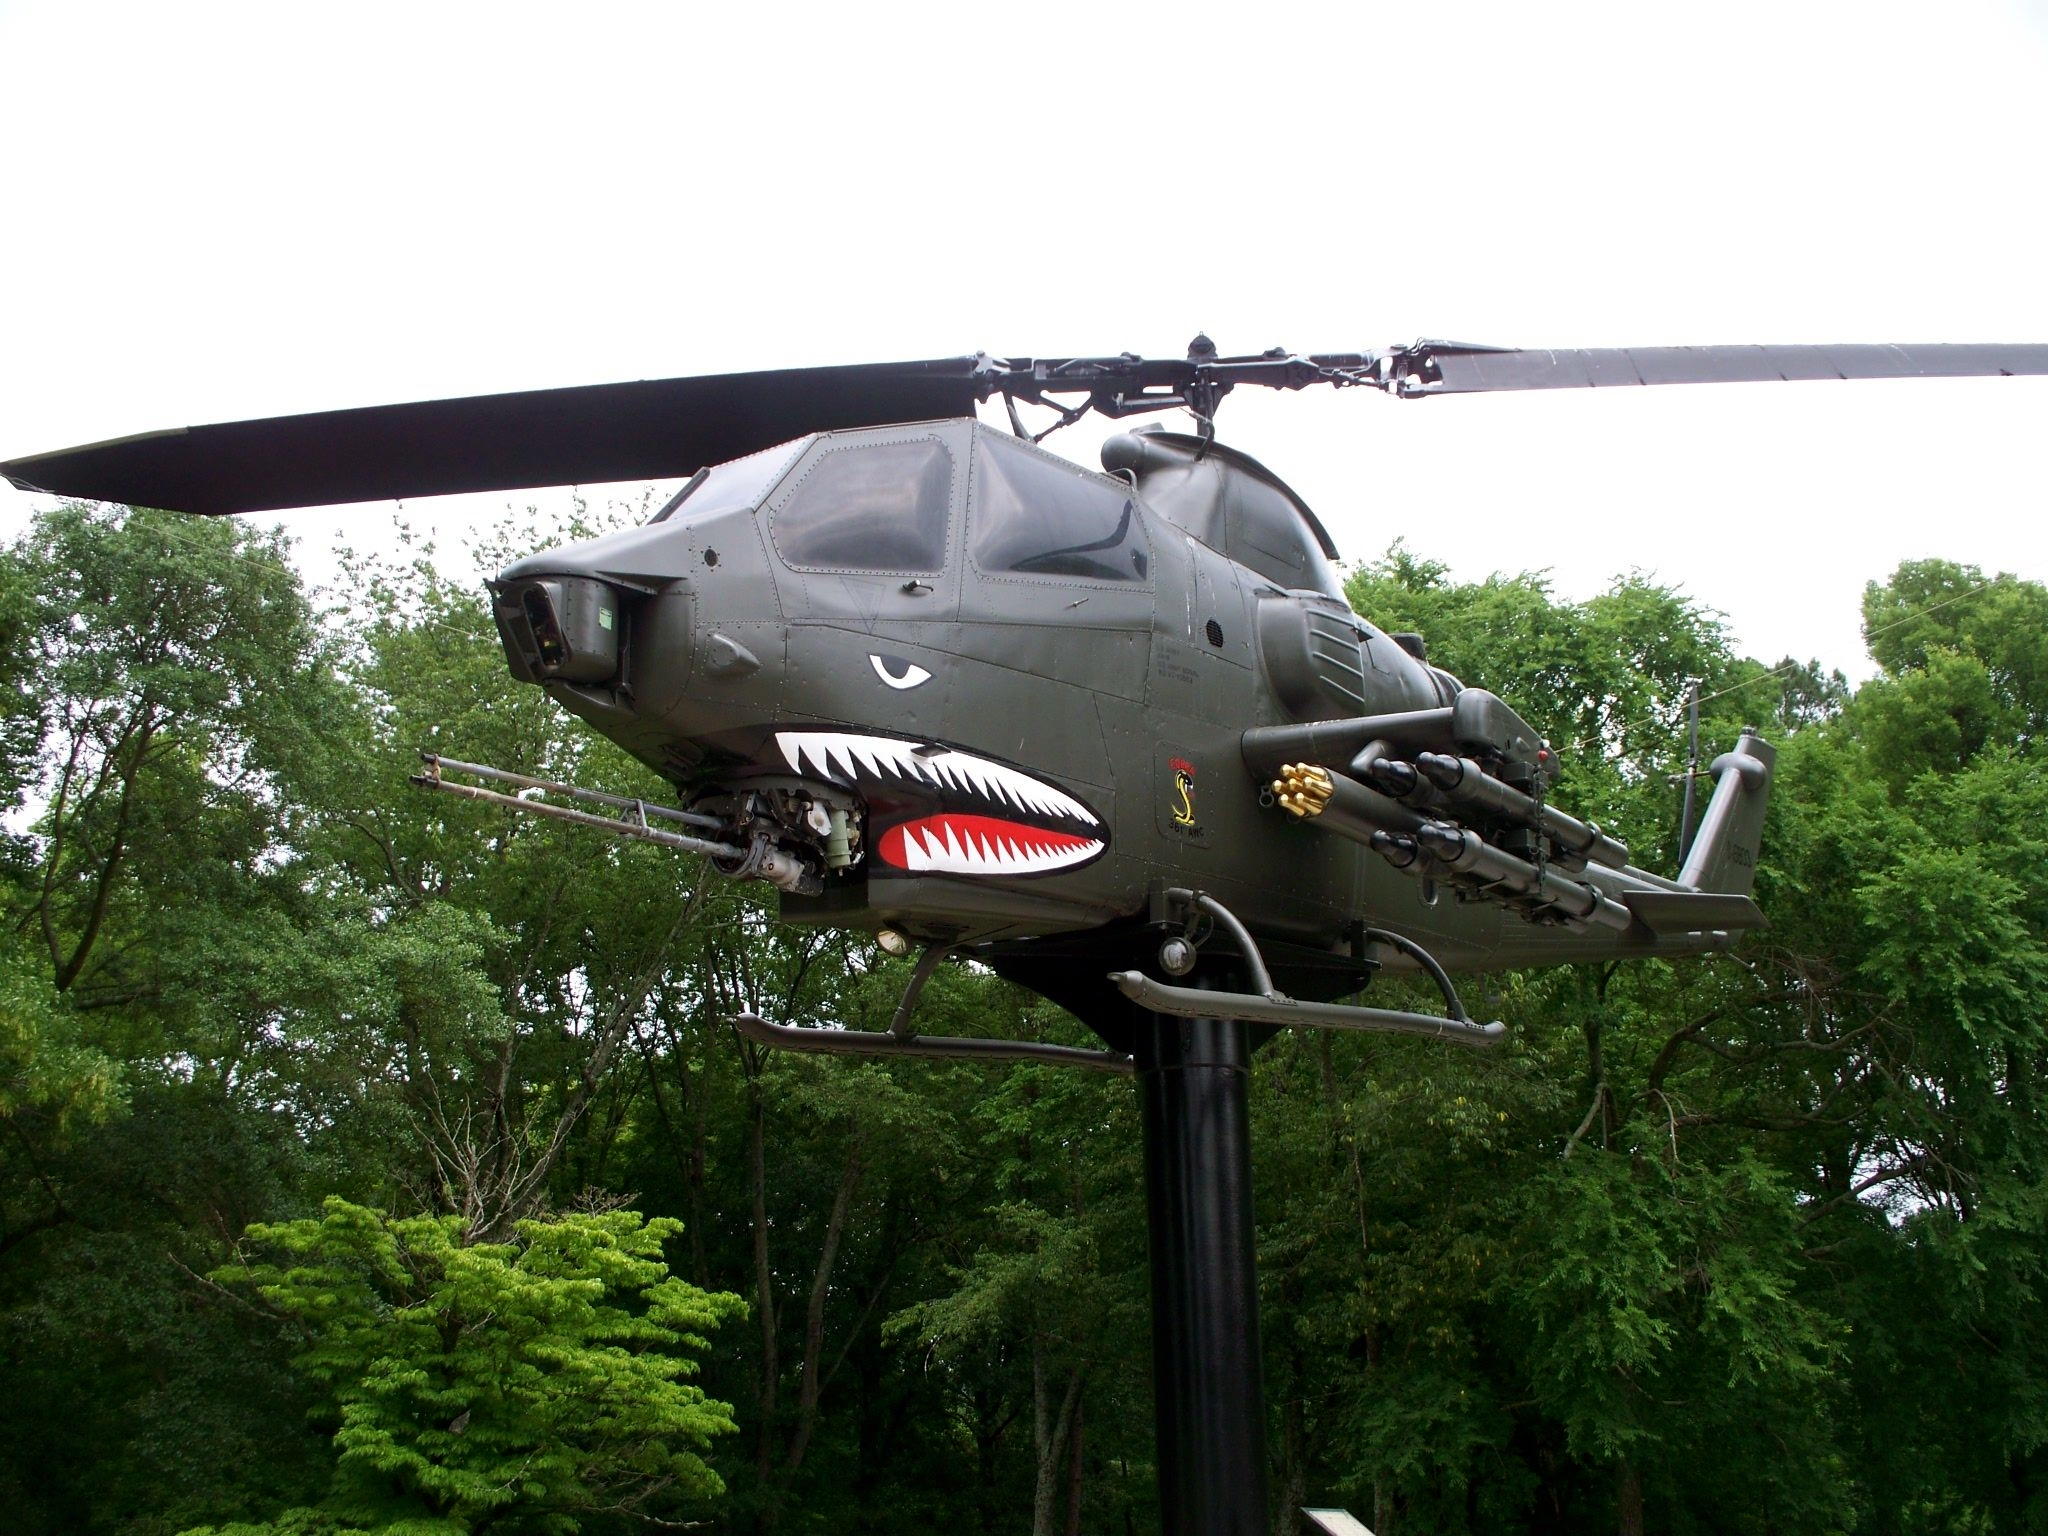 The Cobra Helicopter